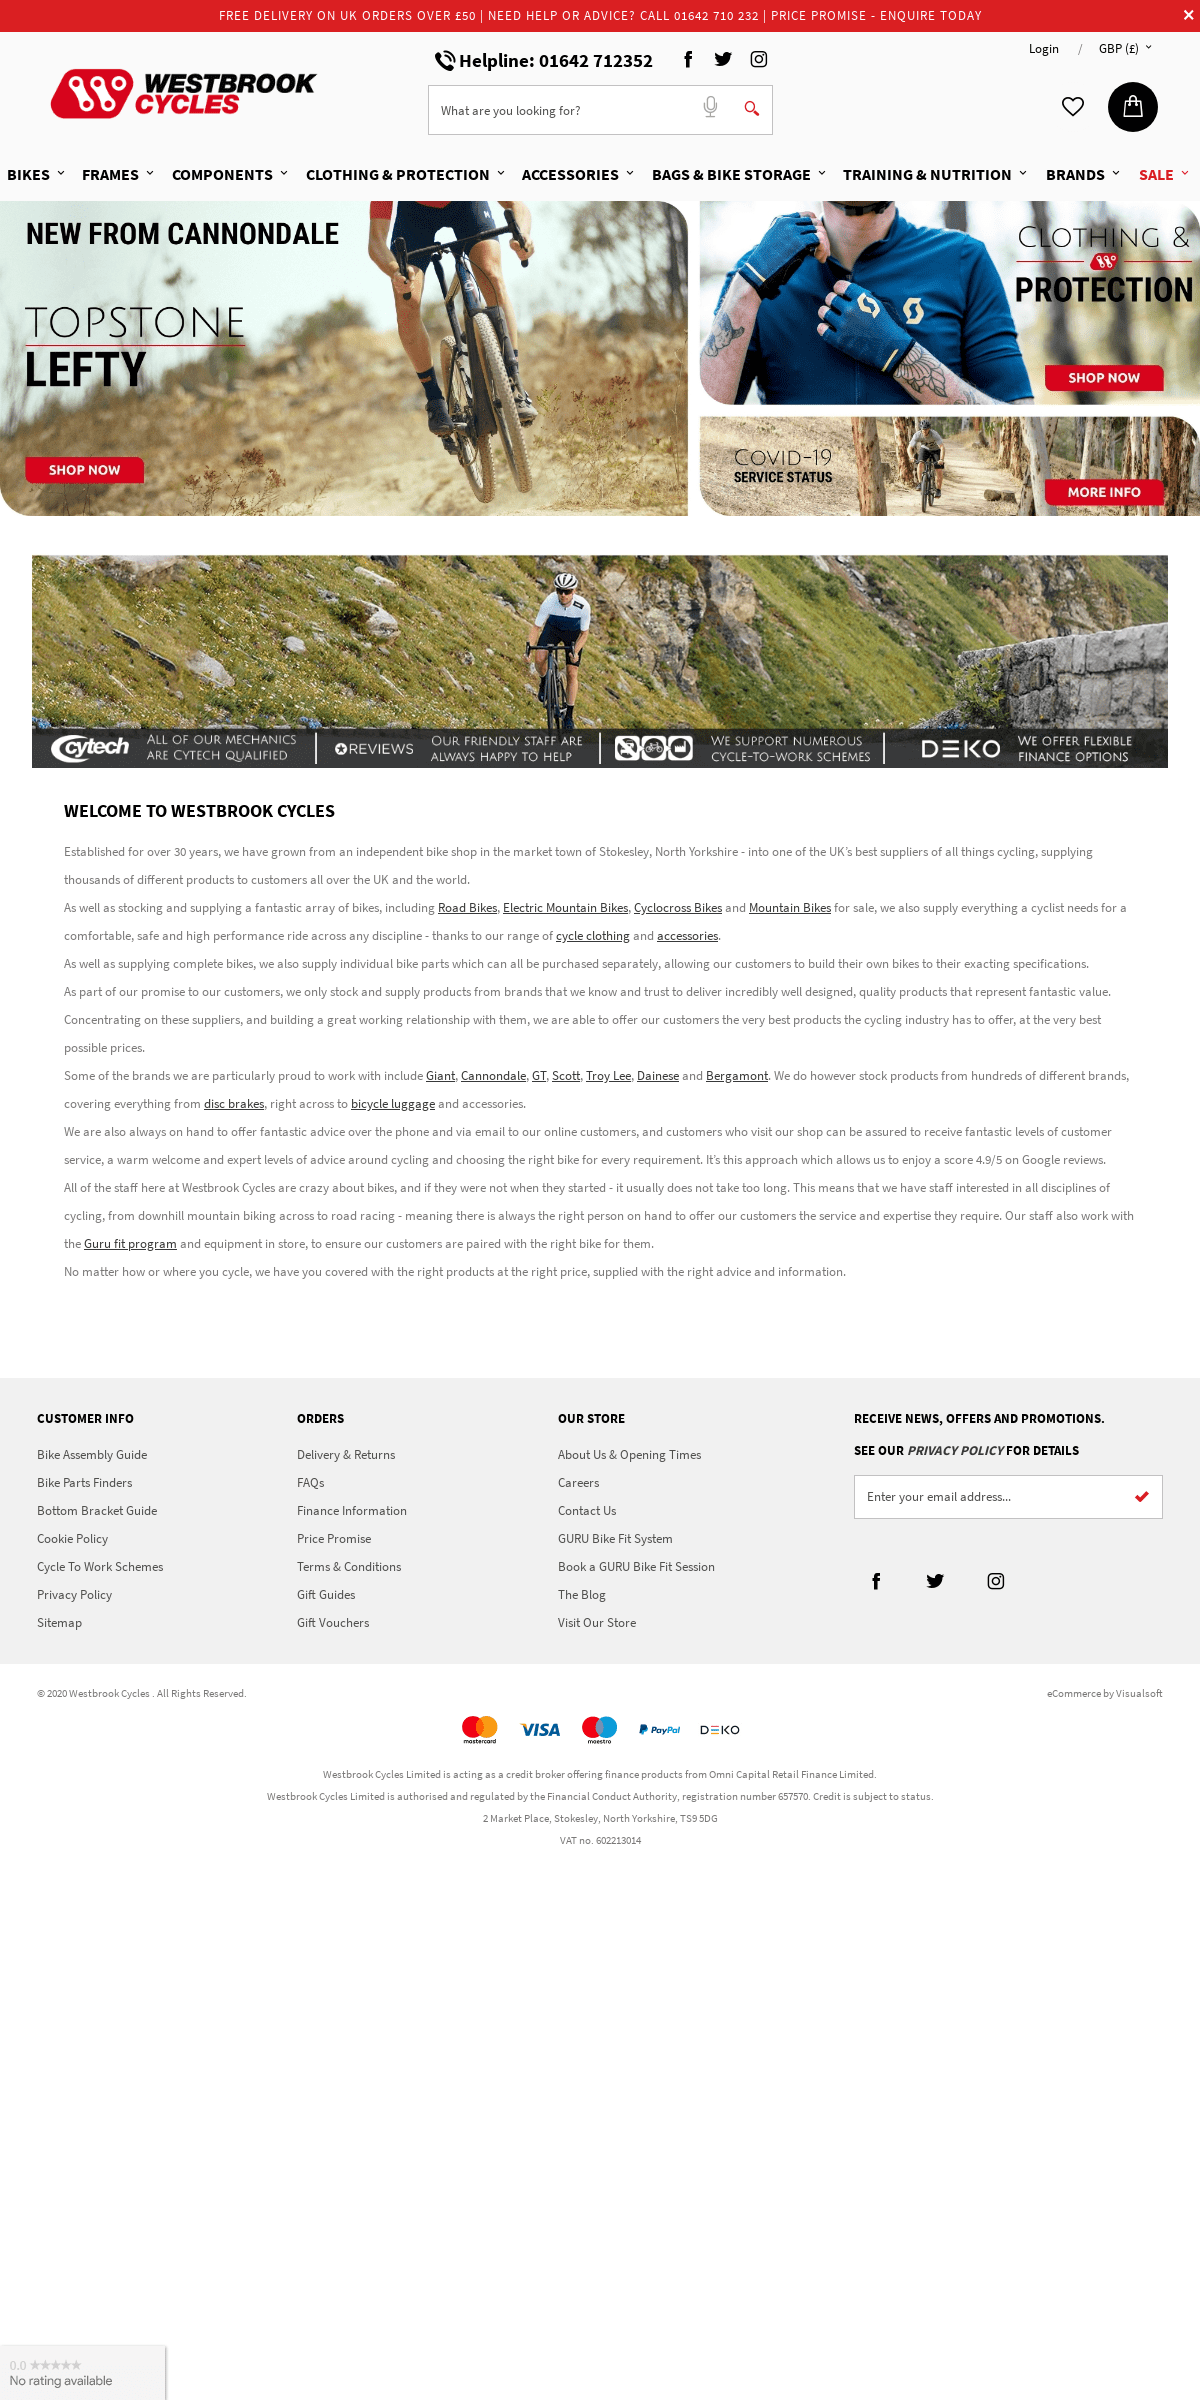 Westbrook Cycles - Bikes, Components & Clothing - Online Bike Shop UK